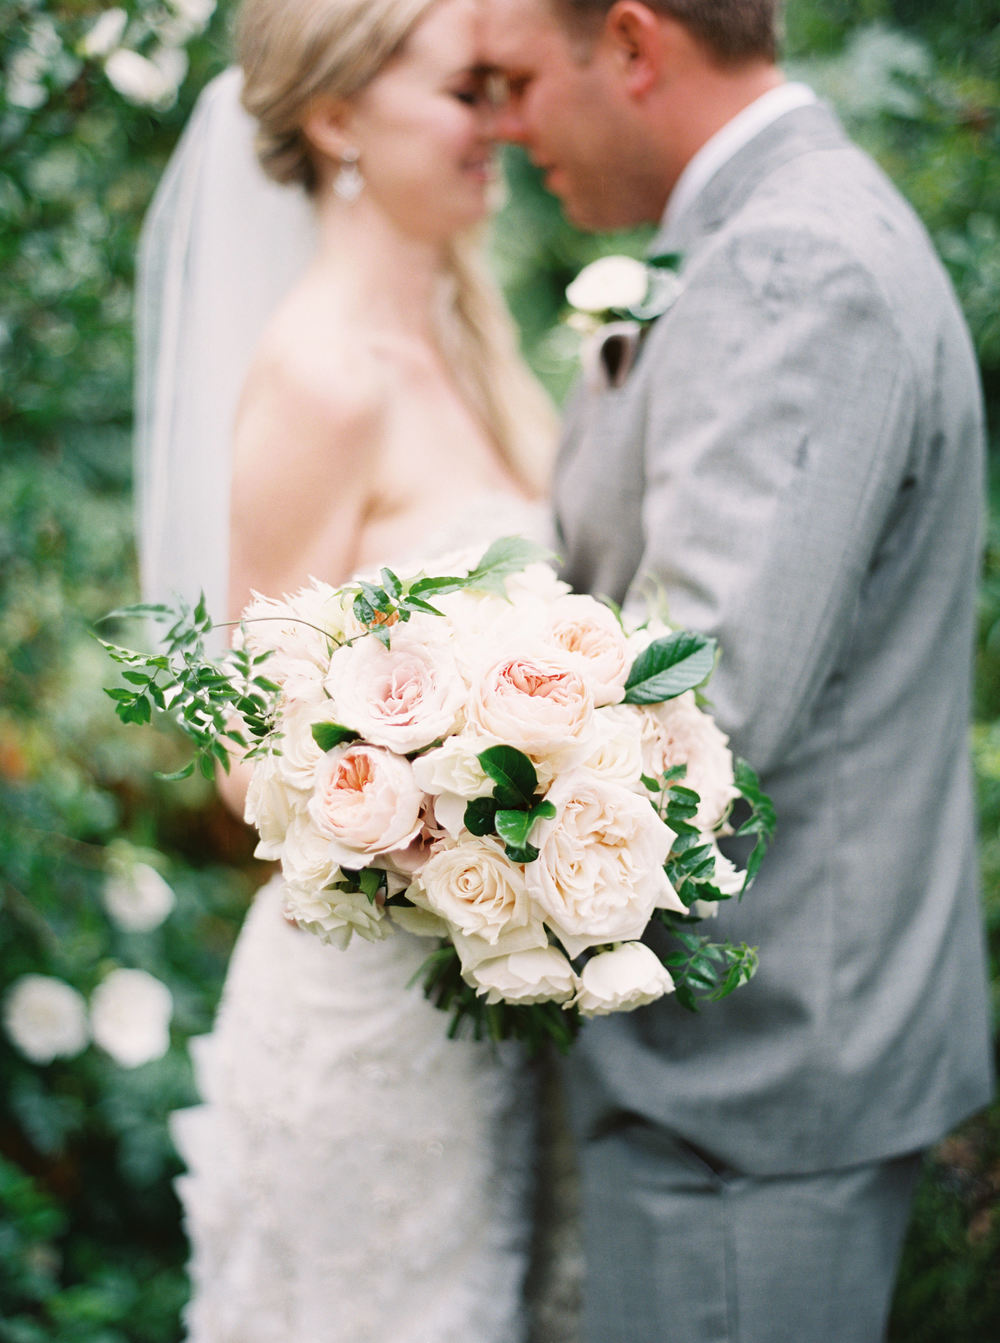 Kurtz-Orchards-Niagara-on-the-Lake-Wedding-photography-by-When-He-Found-Her-034.JPG